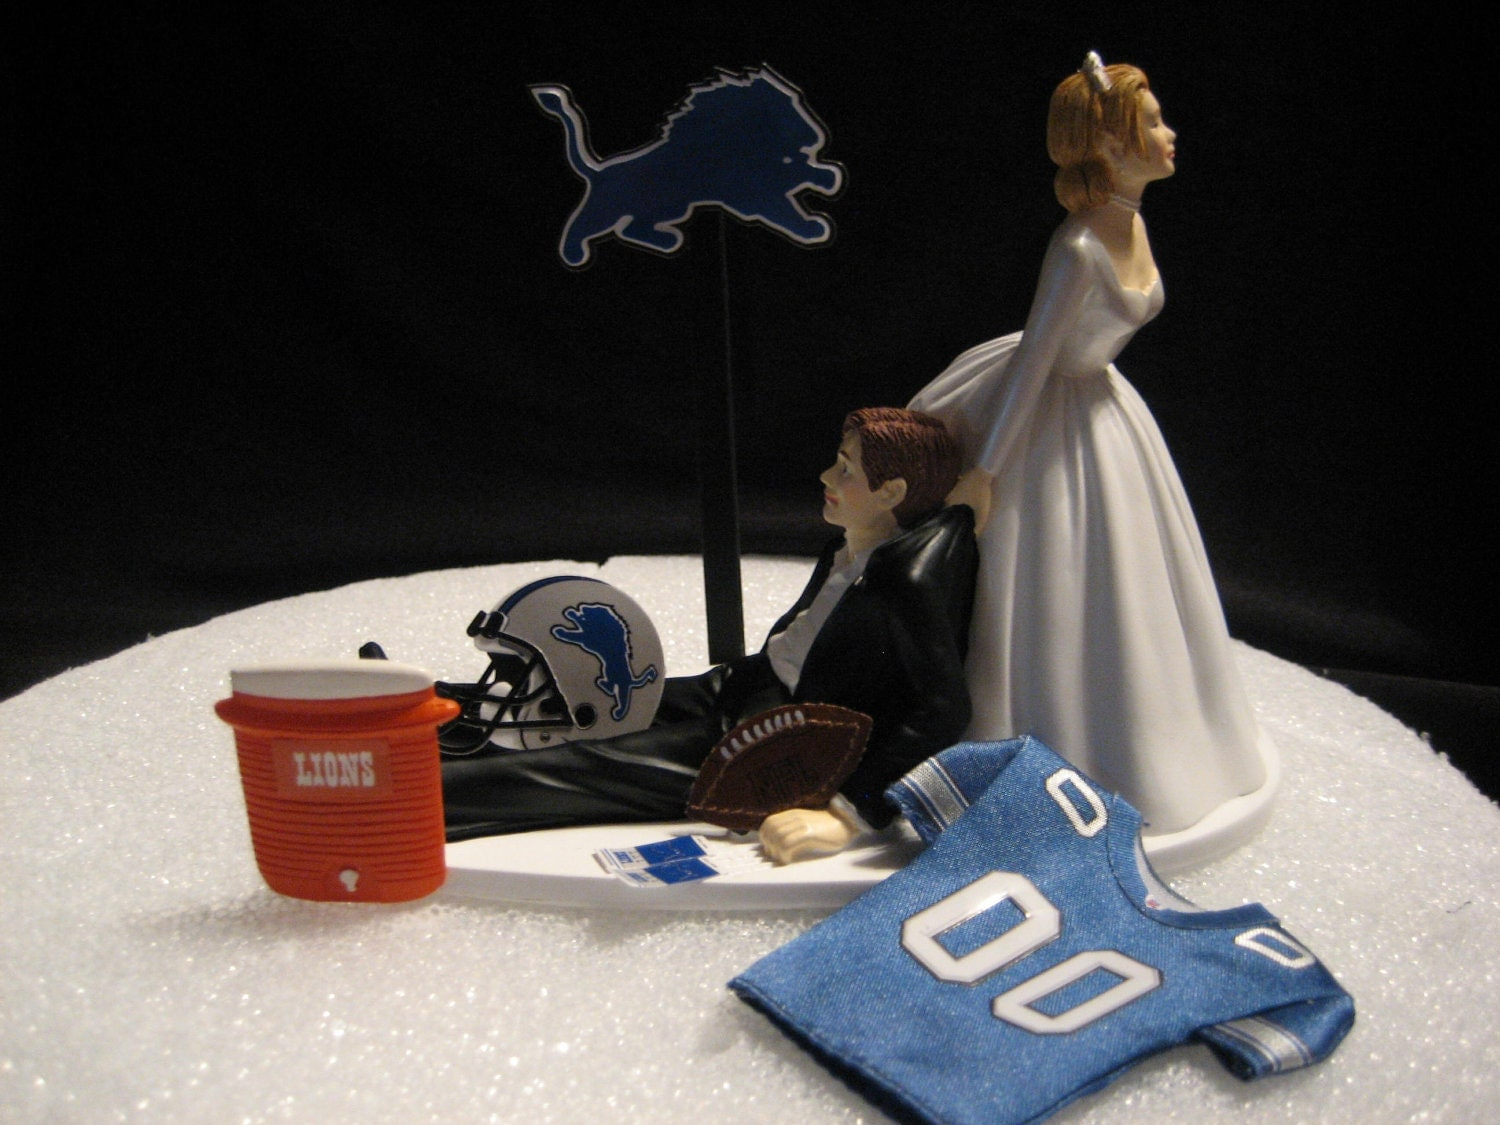 Detroit Lions Wedding Cake Topper Groom Bride Bachelor Party